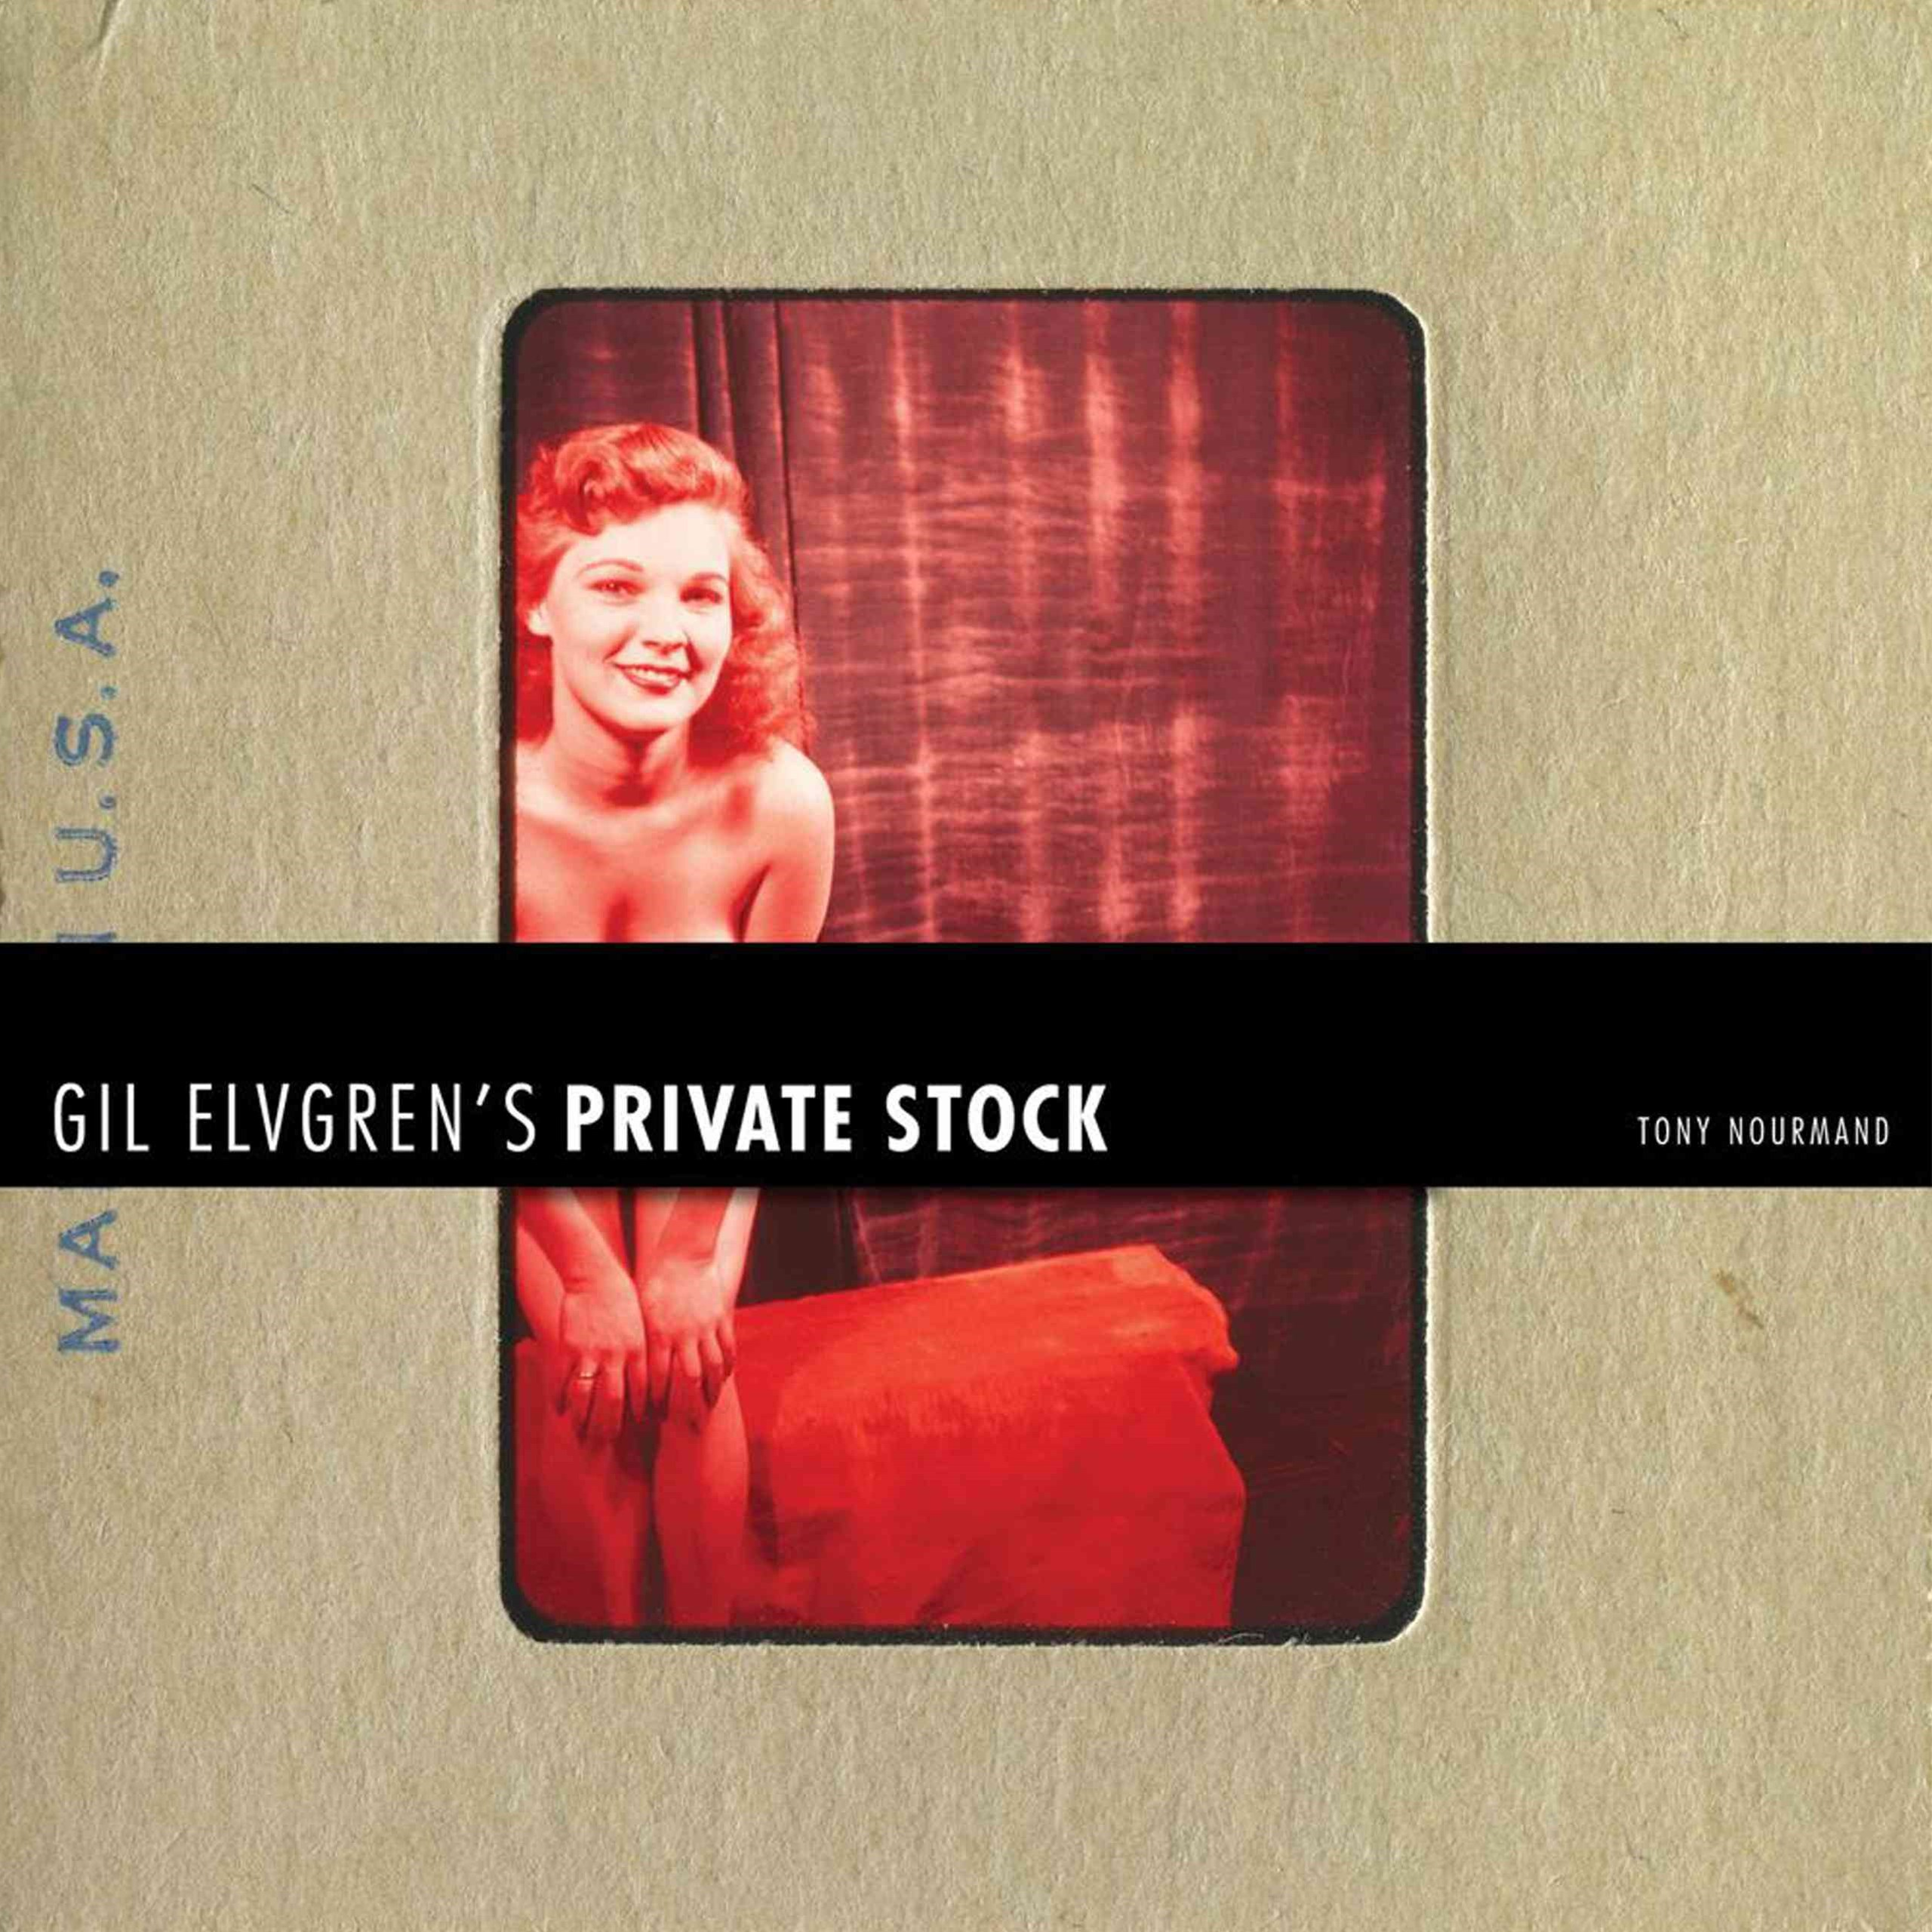 Gil Elvgren's Private Stock